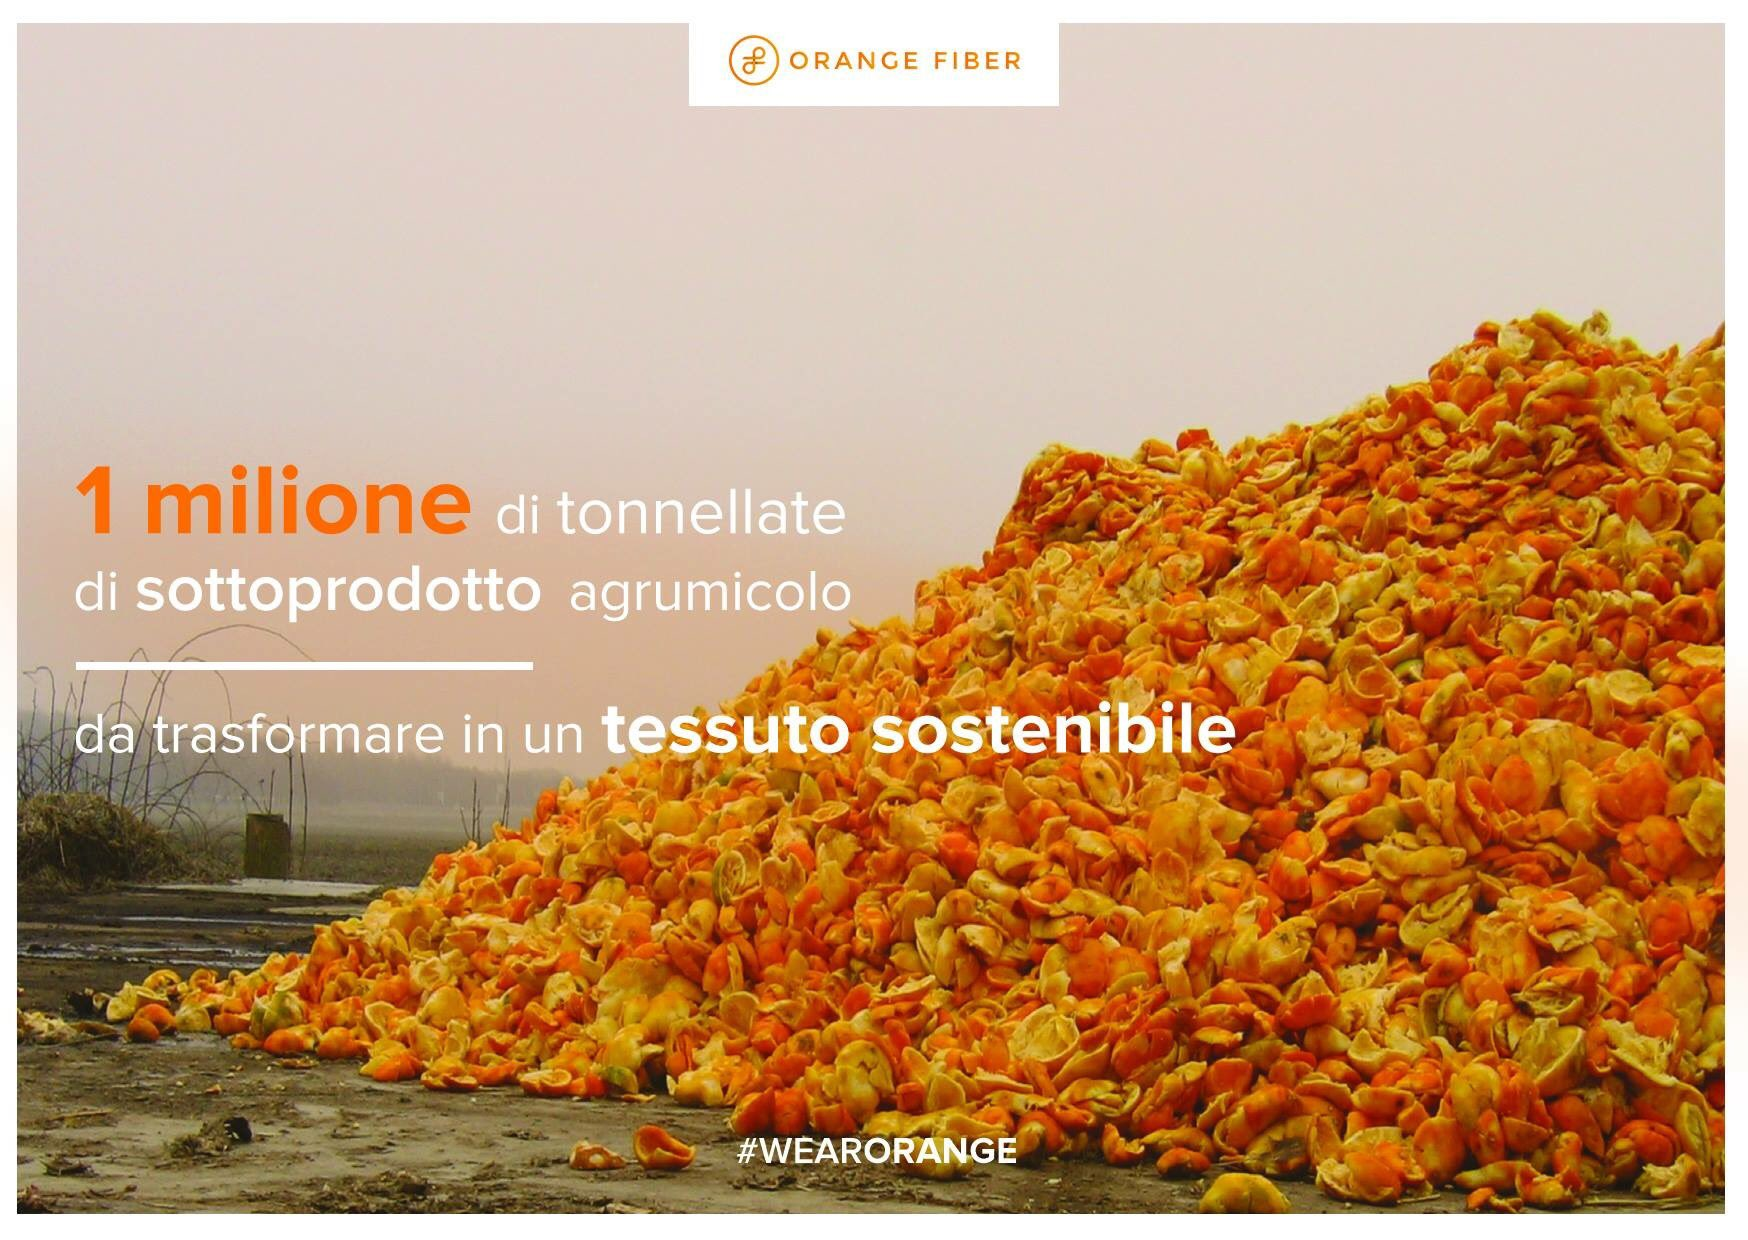 Love food, hate waste #zerosprechiFW #ItalyFoodWeek https://t.co/sBUh247aBL